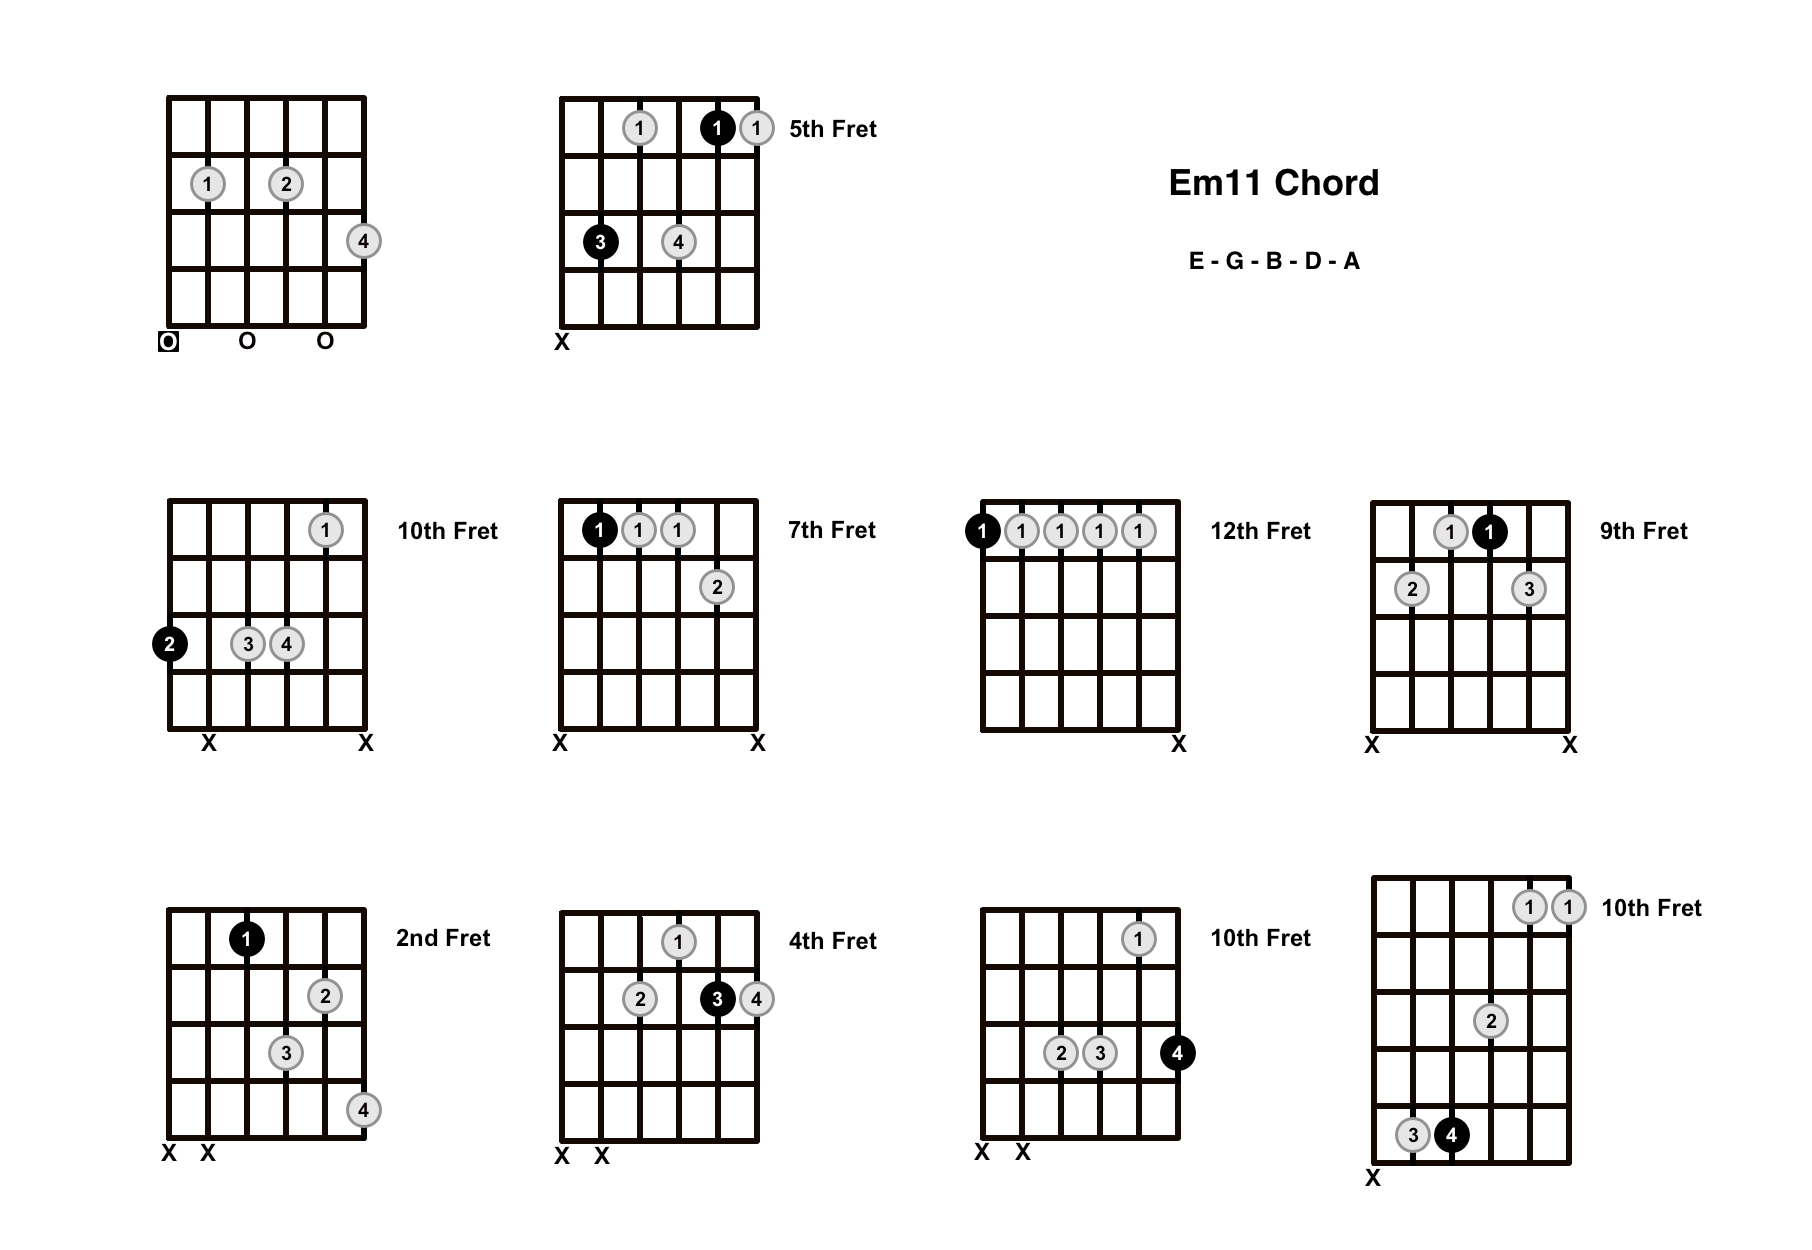 Em11 Chord On The Guitar (E minor 11) – Diagrams, Finger Positions and Theory